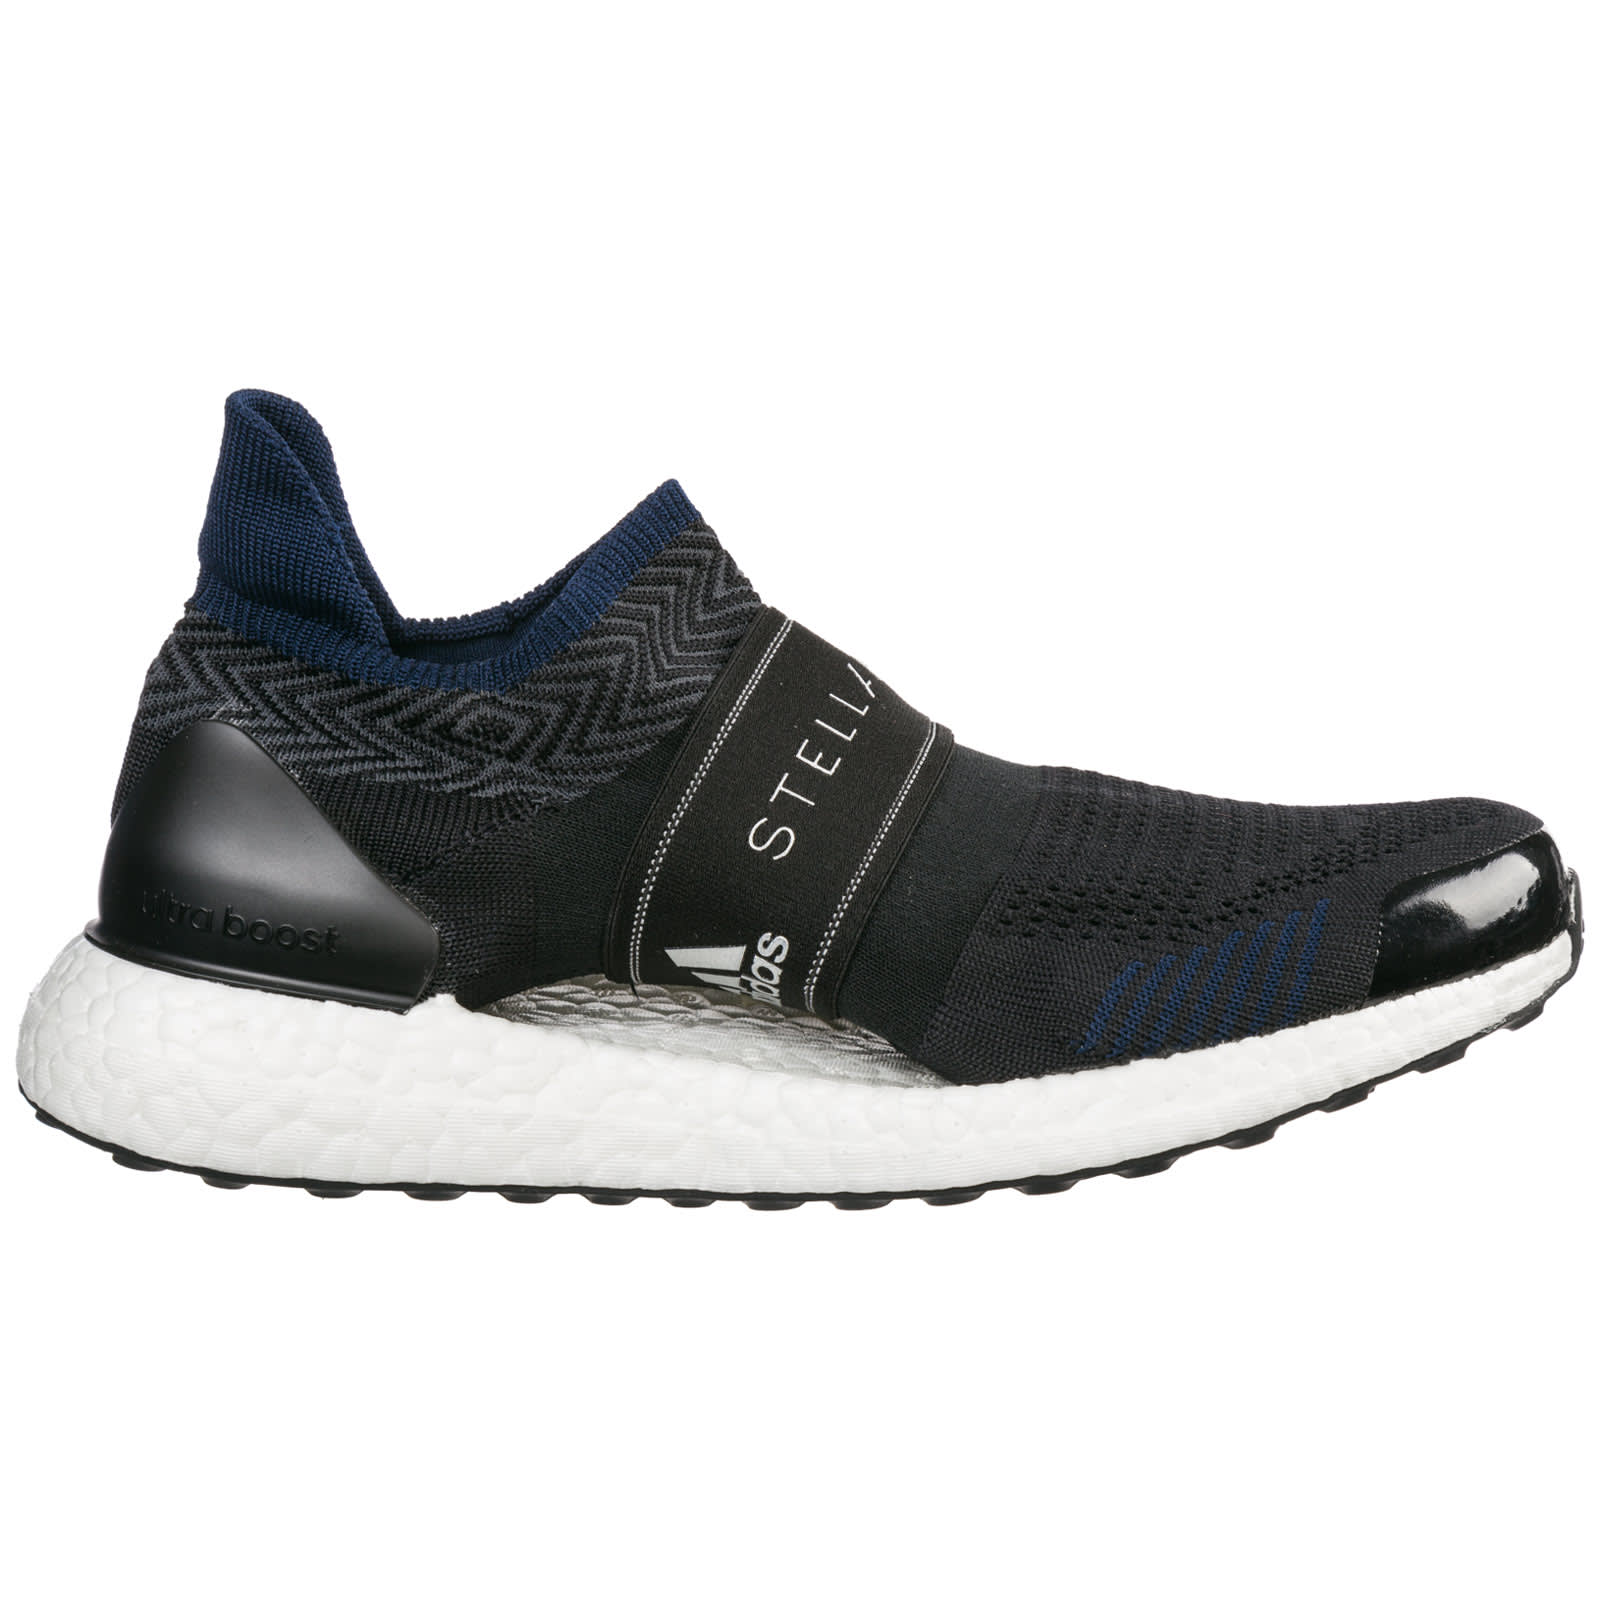 buy online 977b2 25dcf Adidas by Stella McCartney Shoes Trainers Sneakers Running Ultraboost X 3d